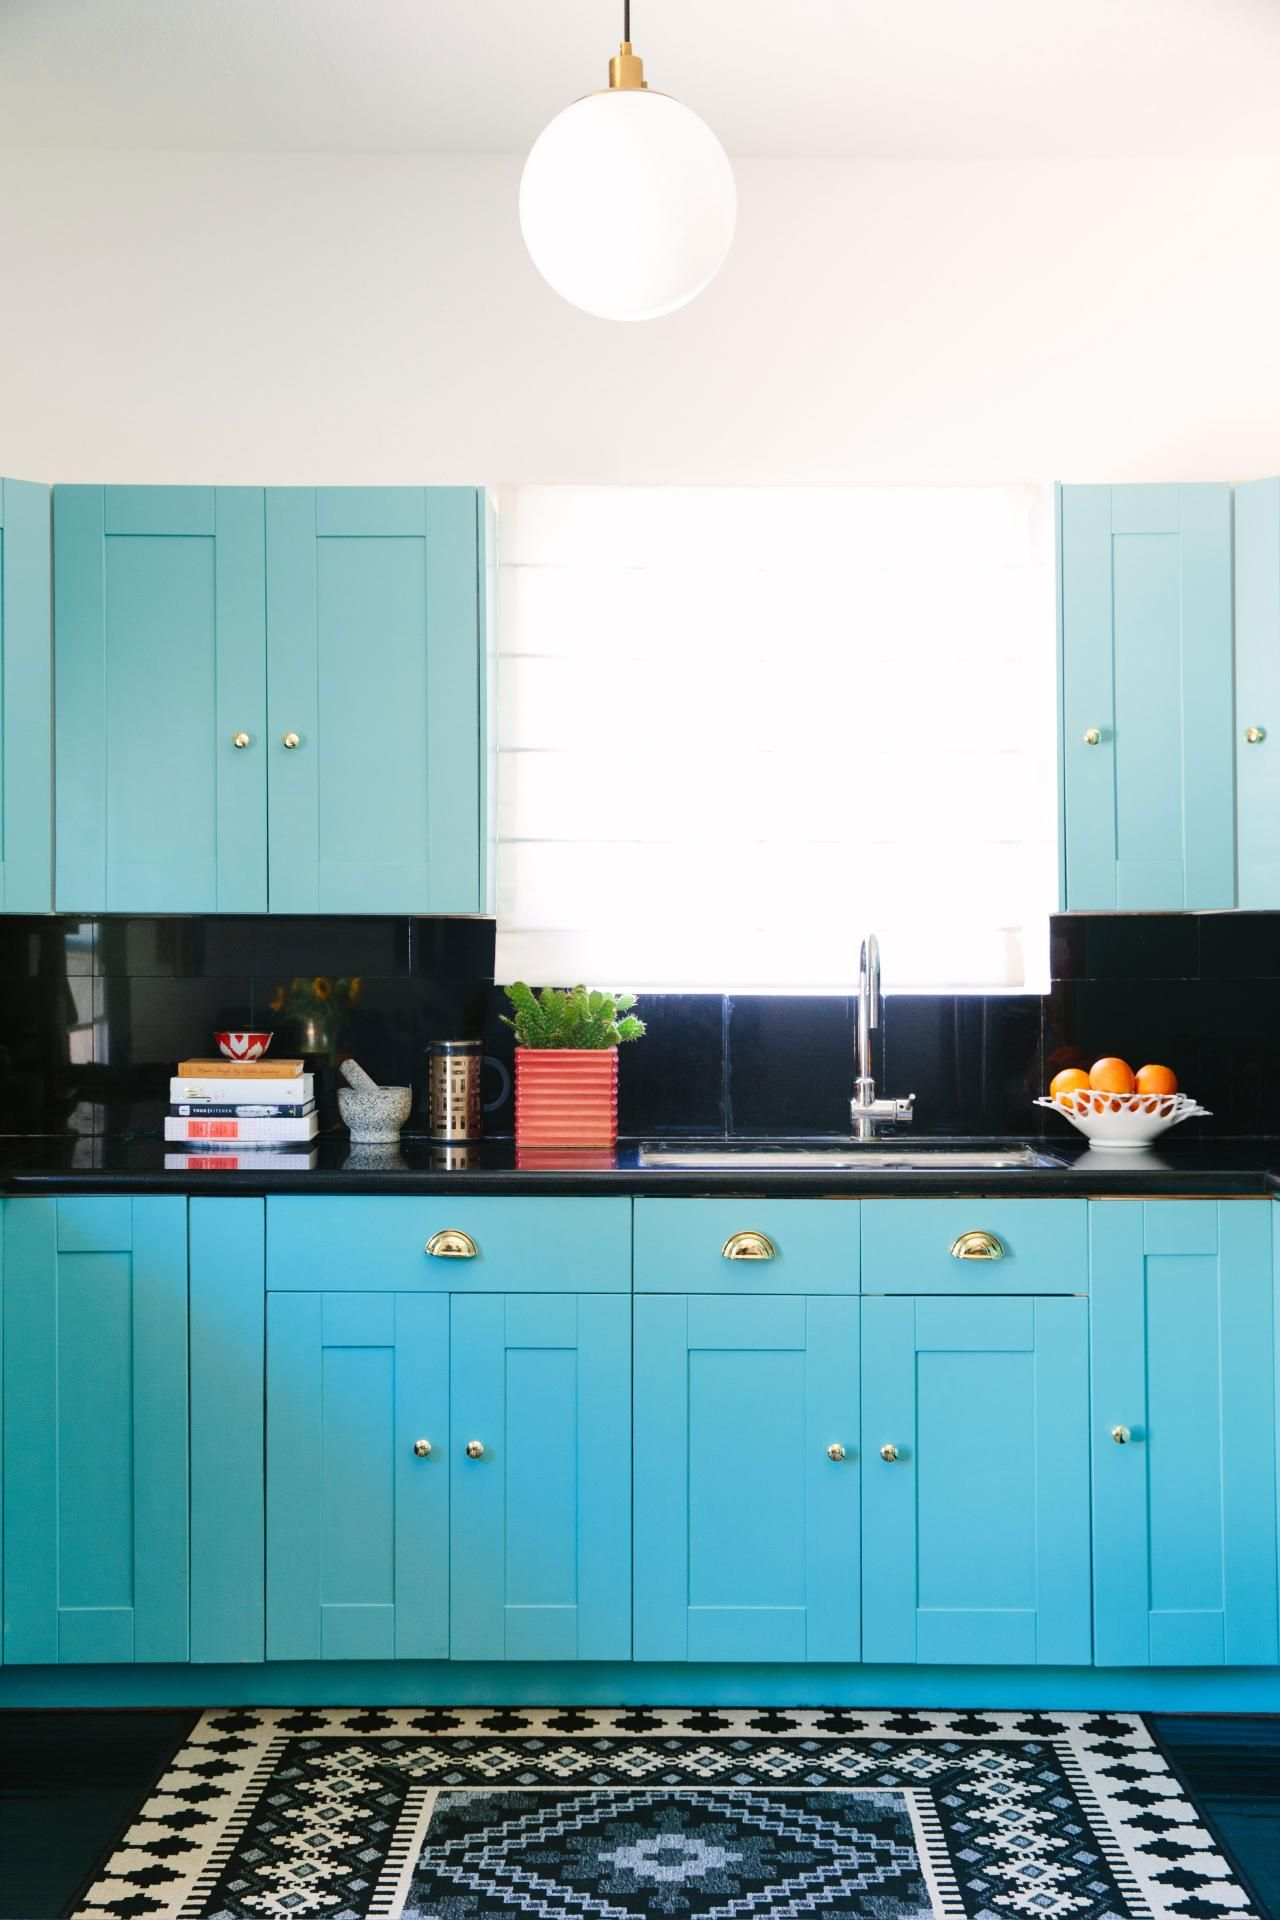 Ways to Add a Pop of Color for Under $100 | Pinterest | Kitchen ...